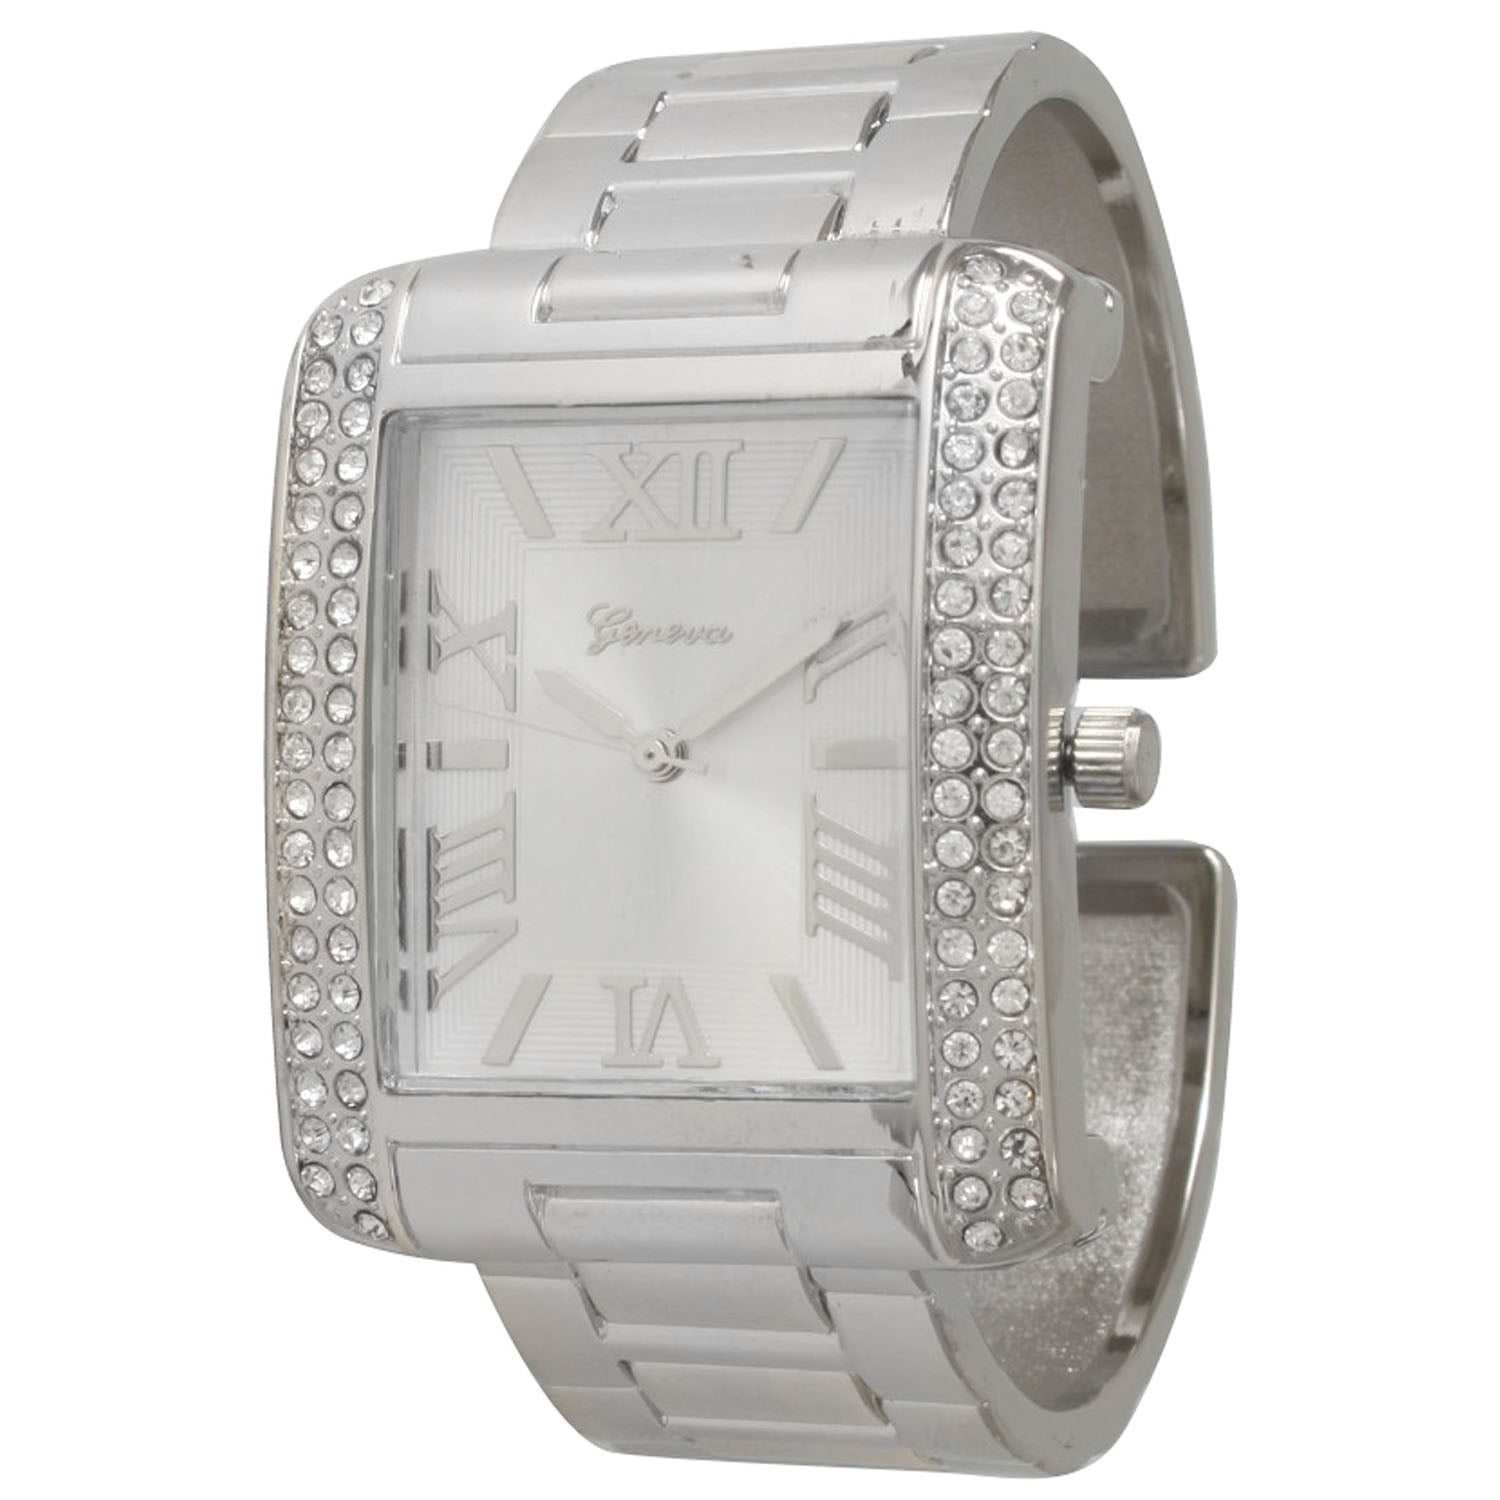 Olivia Pratt Women's Silvertone Stainless Steel Cuff Watch